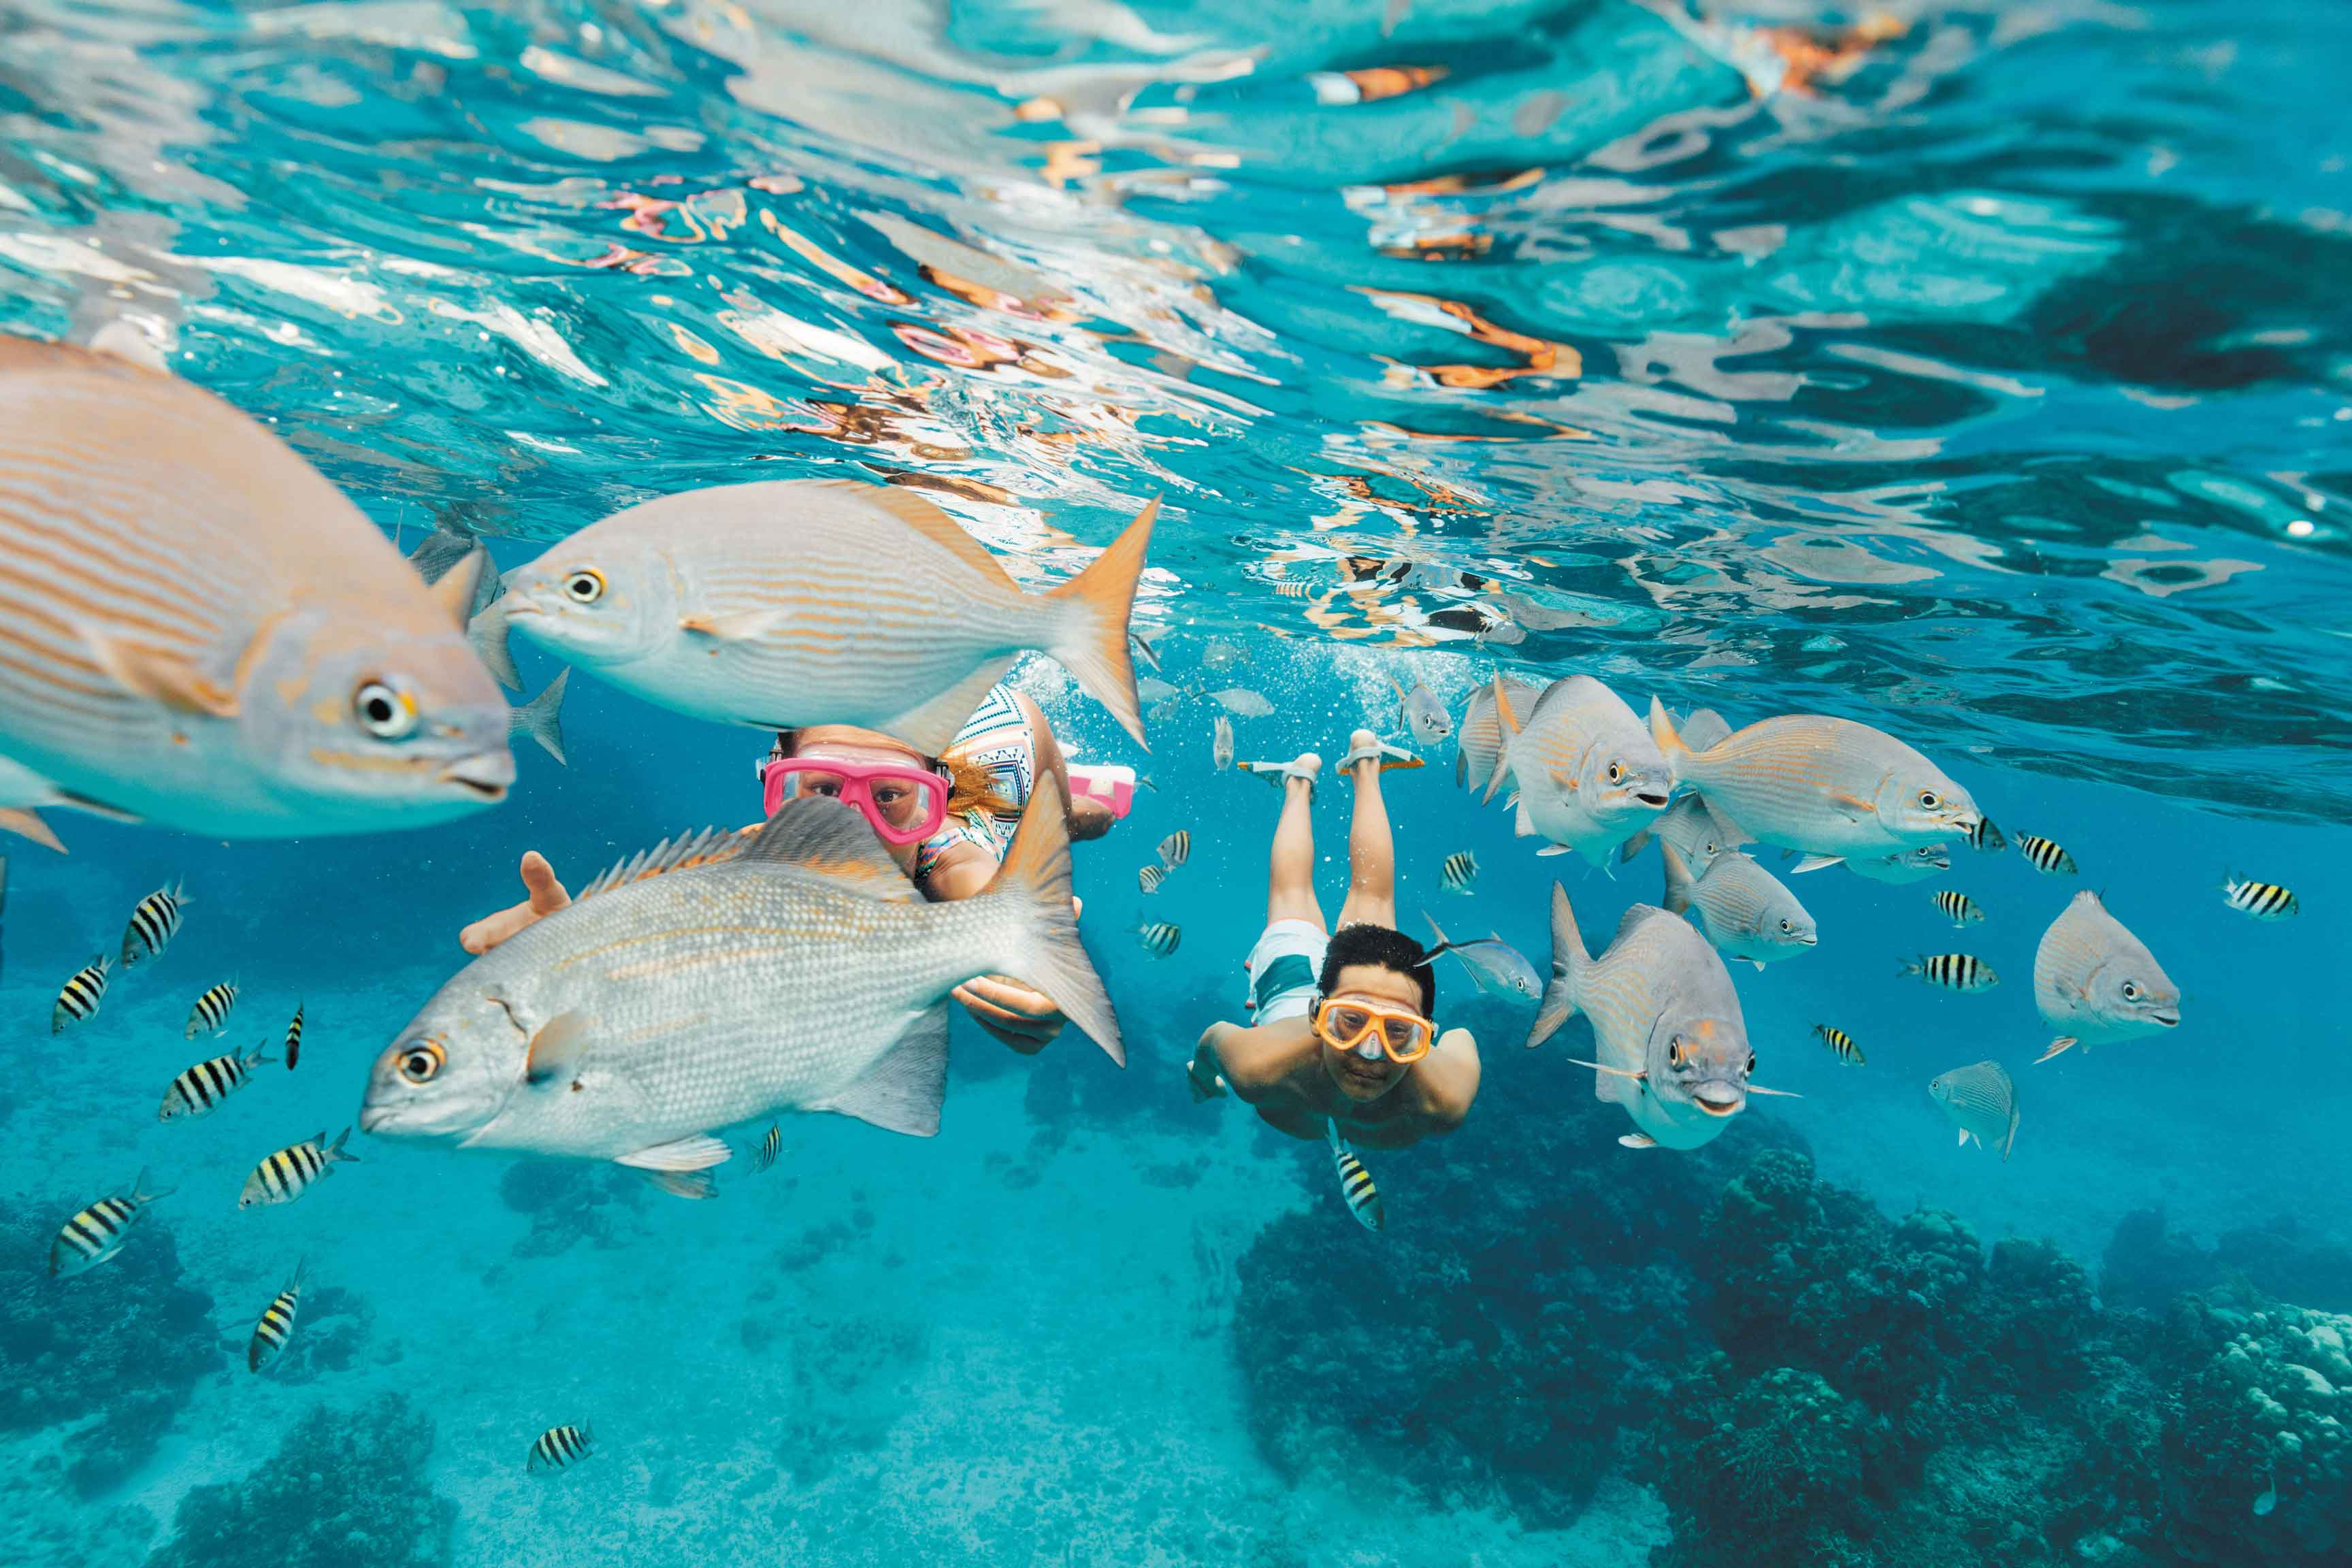 Two people snorkeling in Cozumel, Mexico